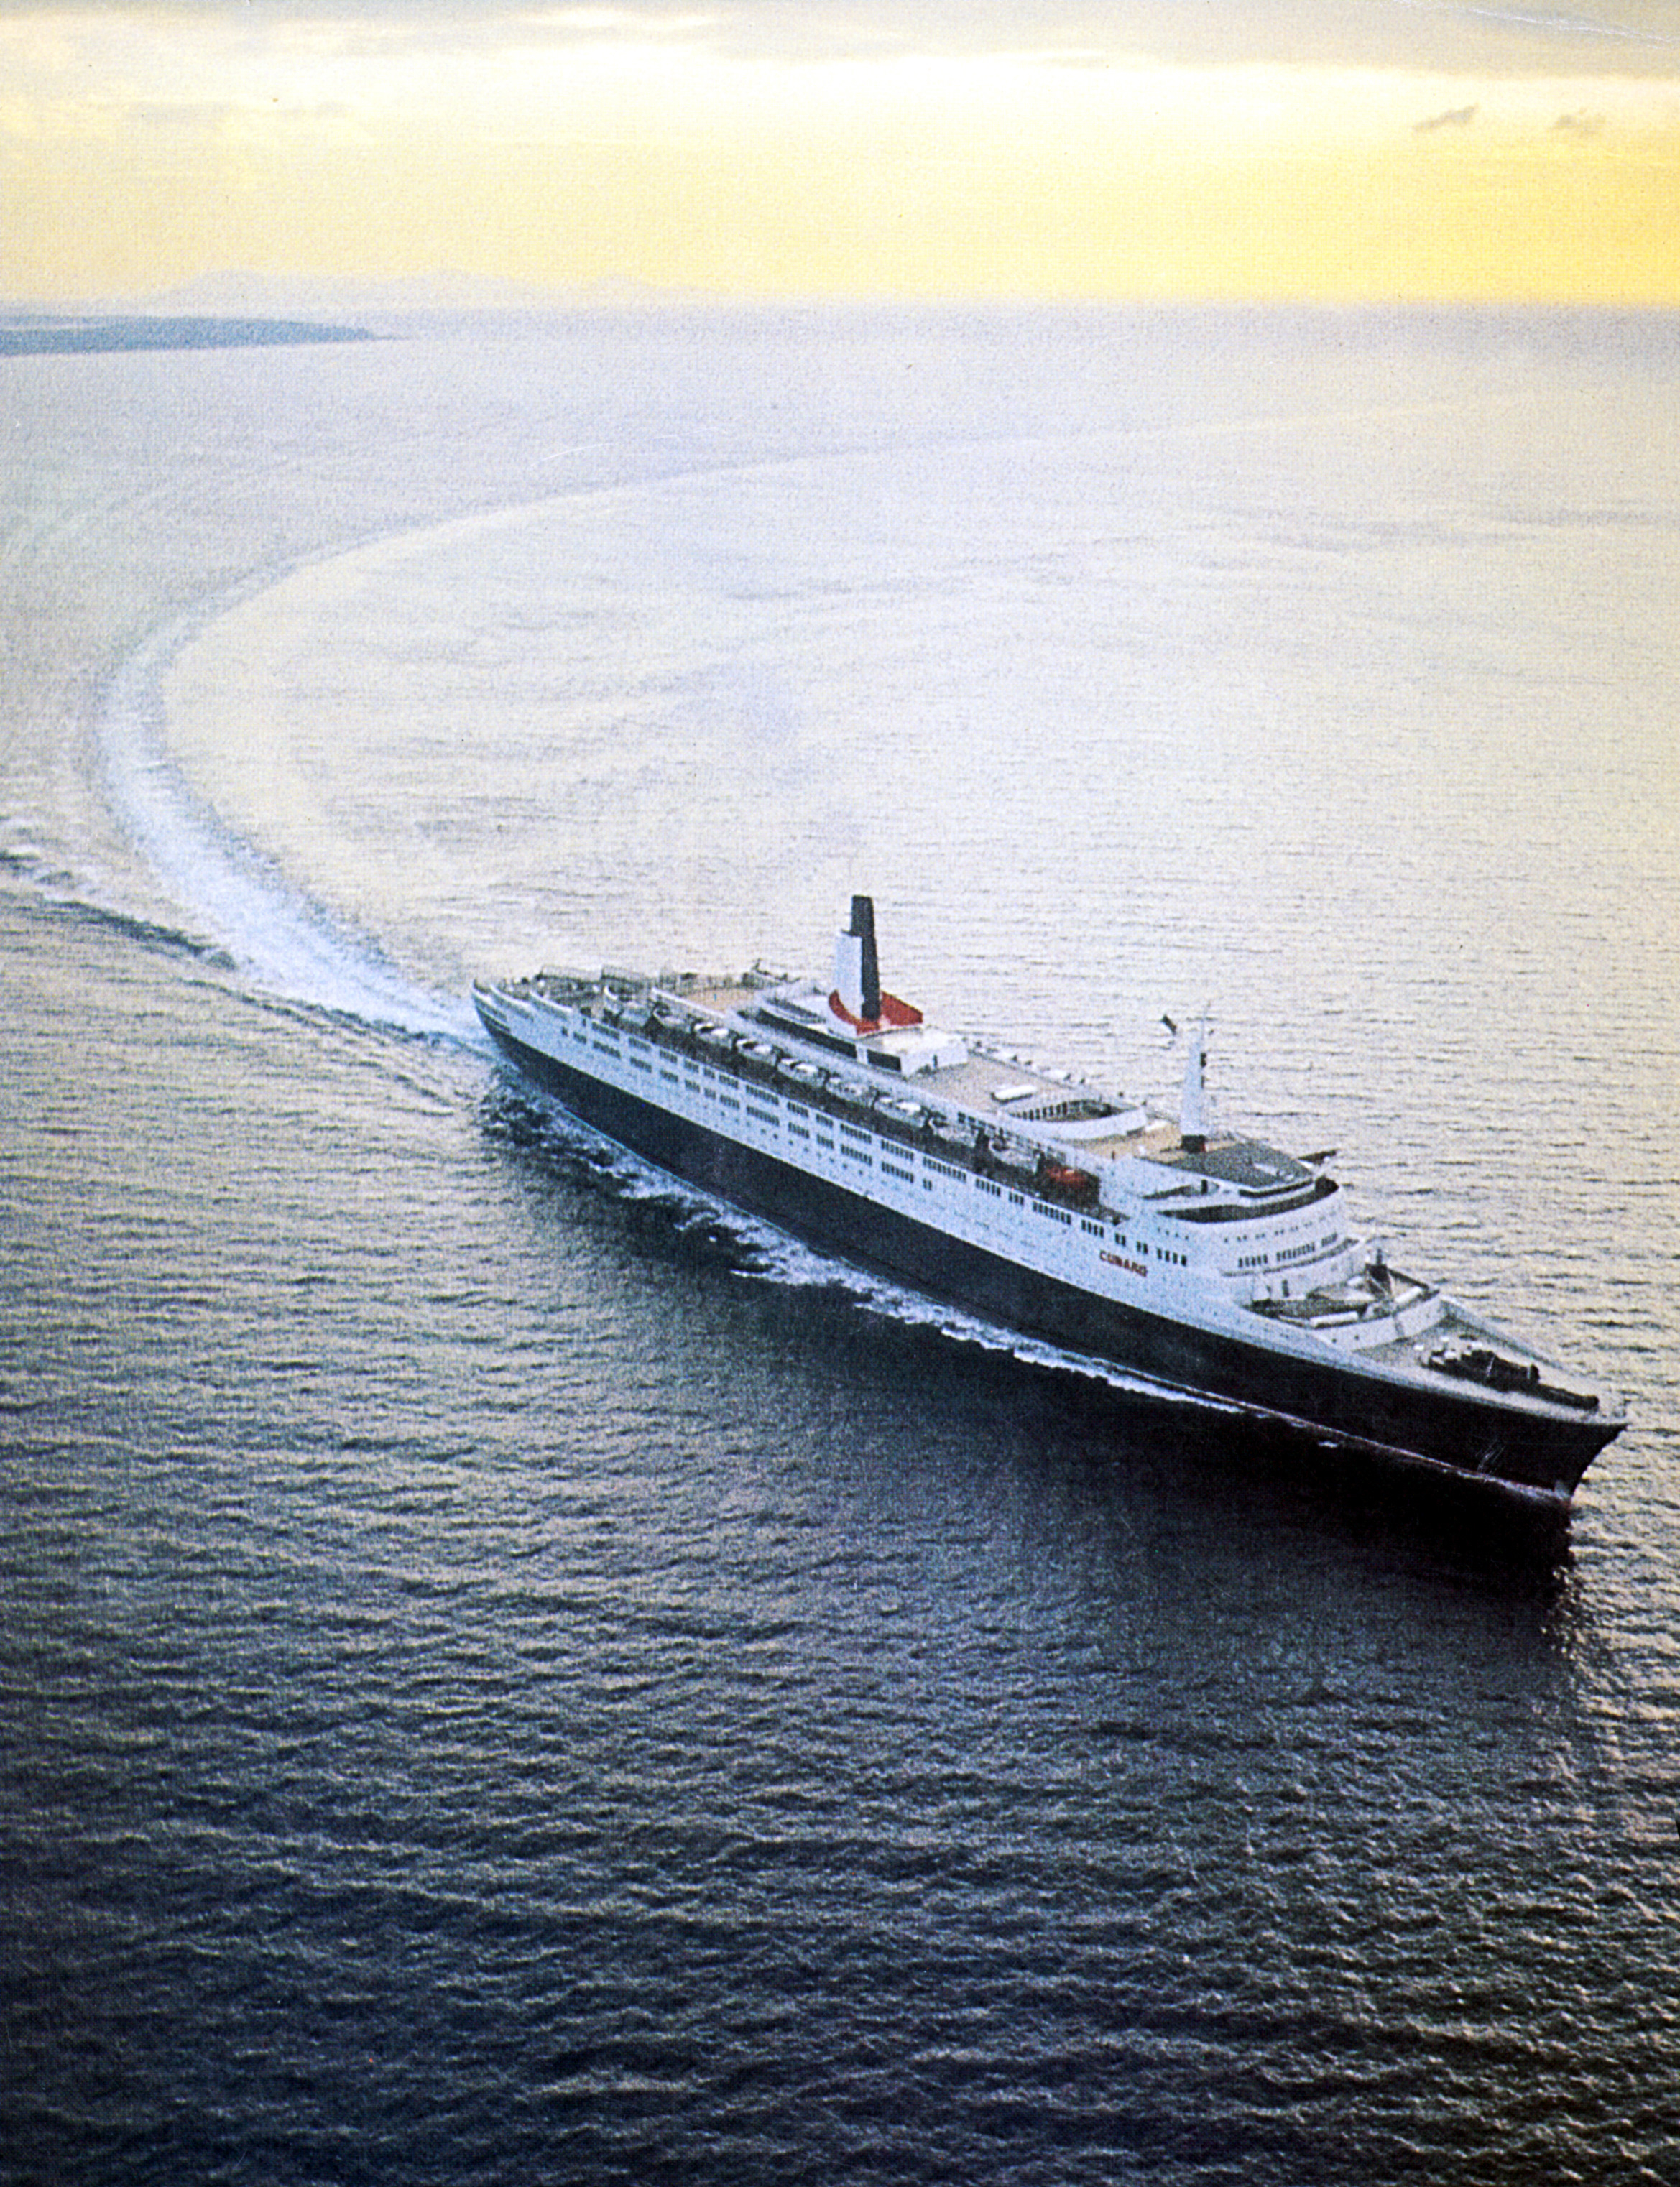 QE2 undergoing sea trials, early 1969